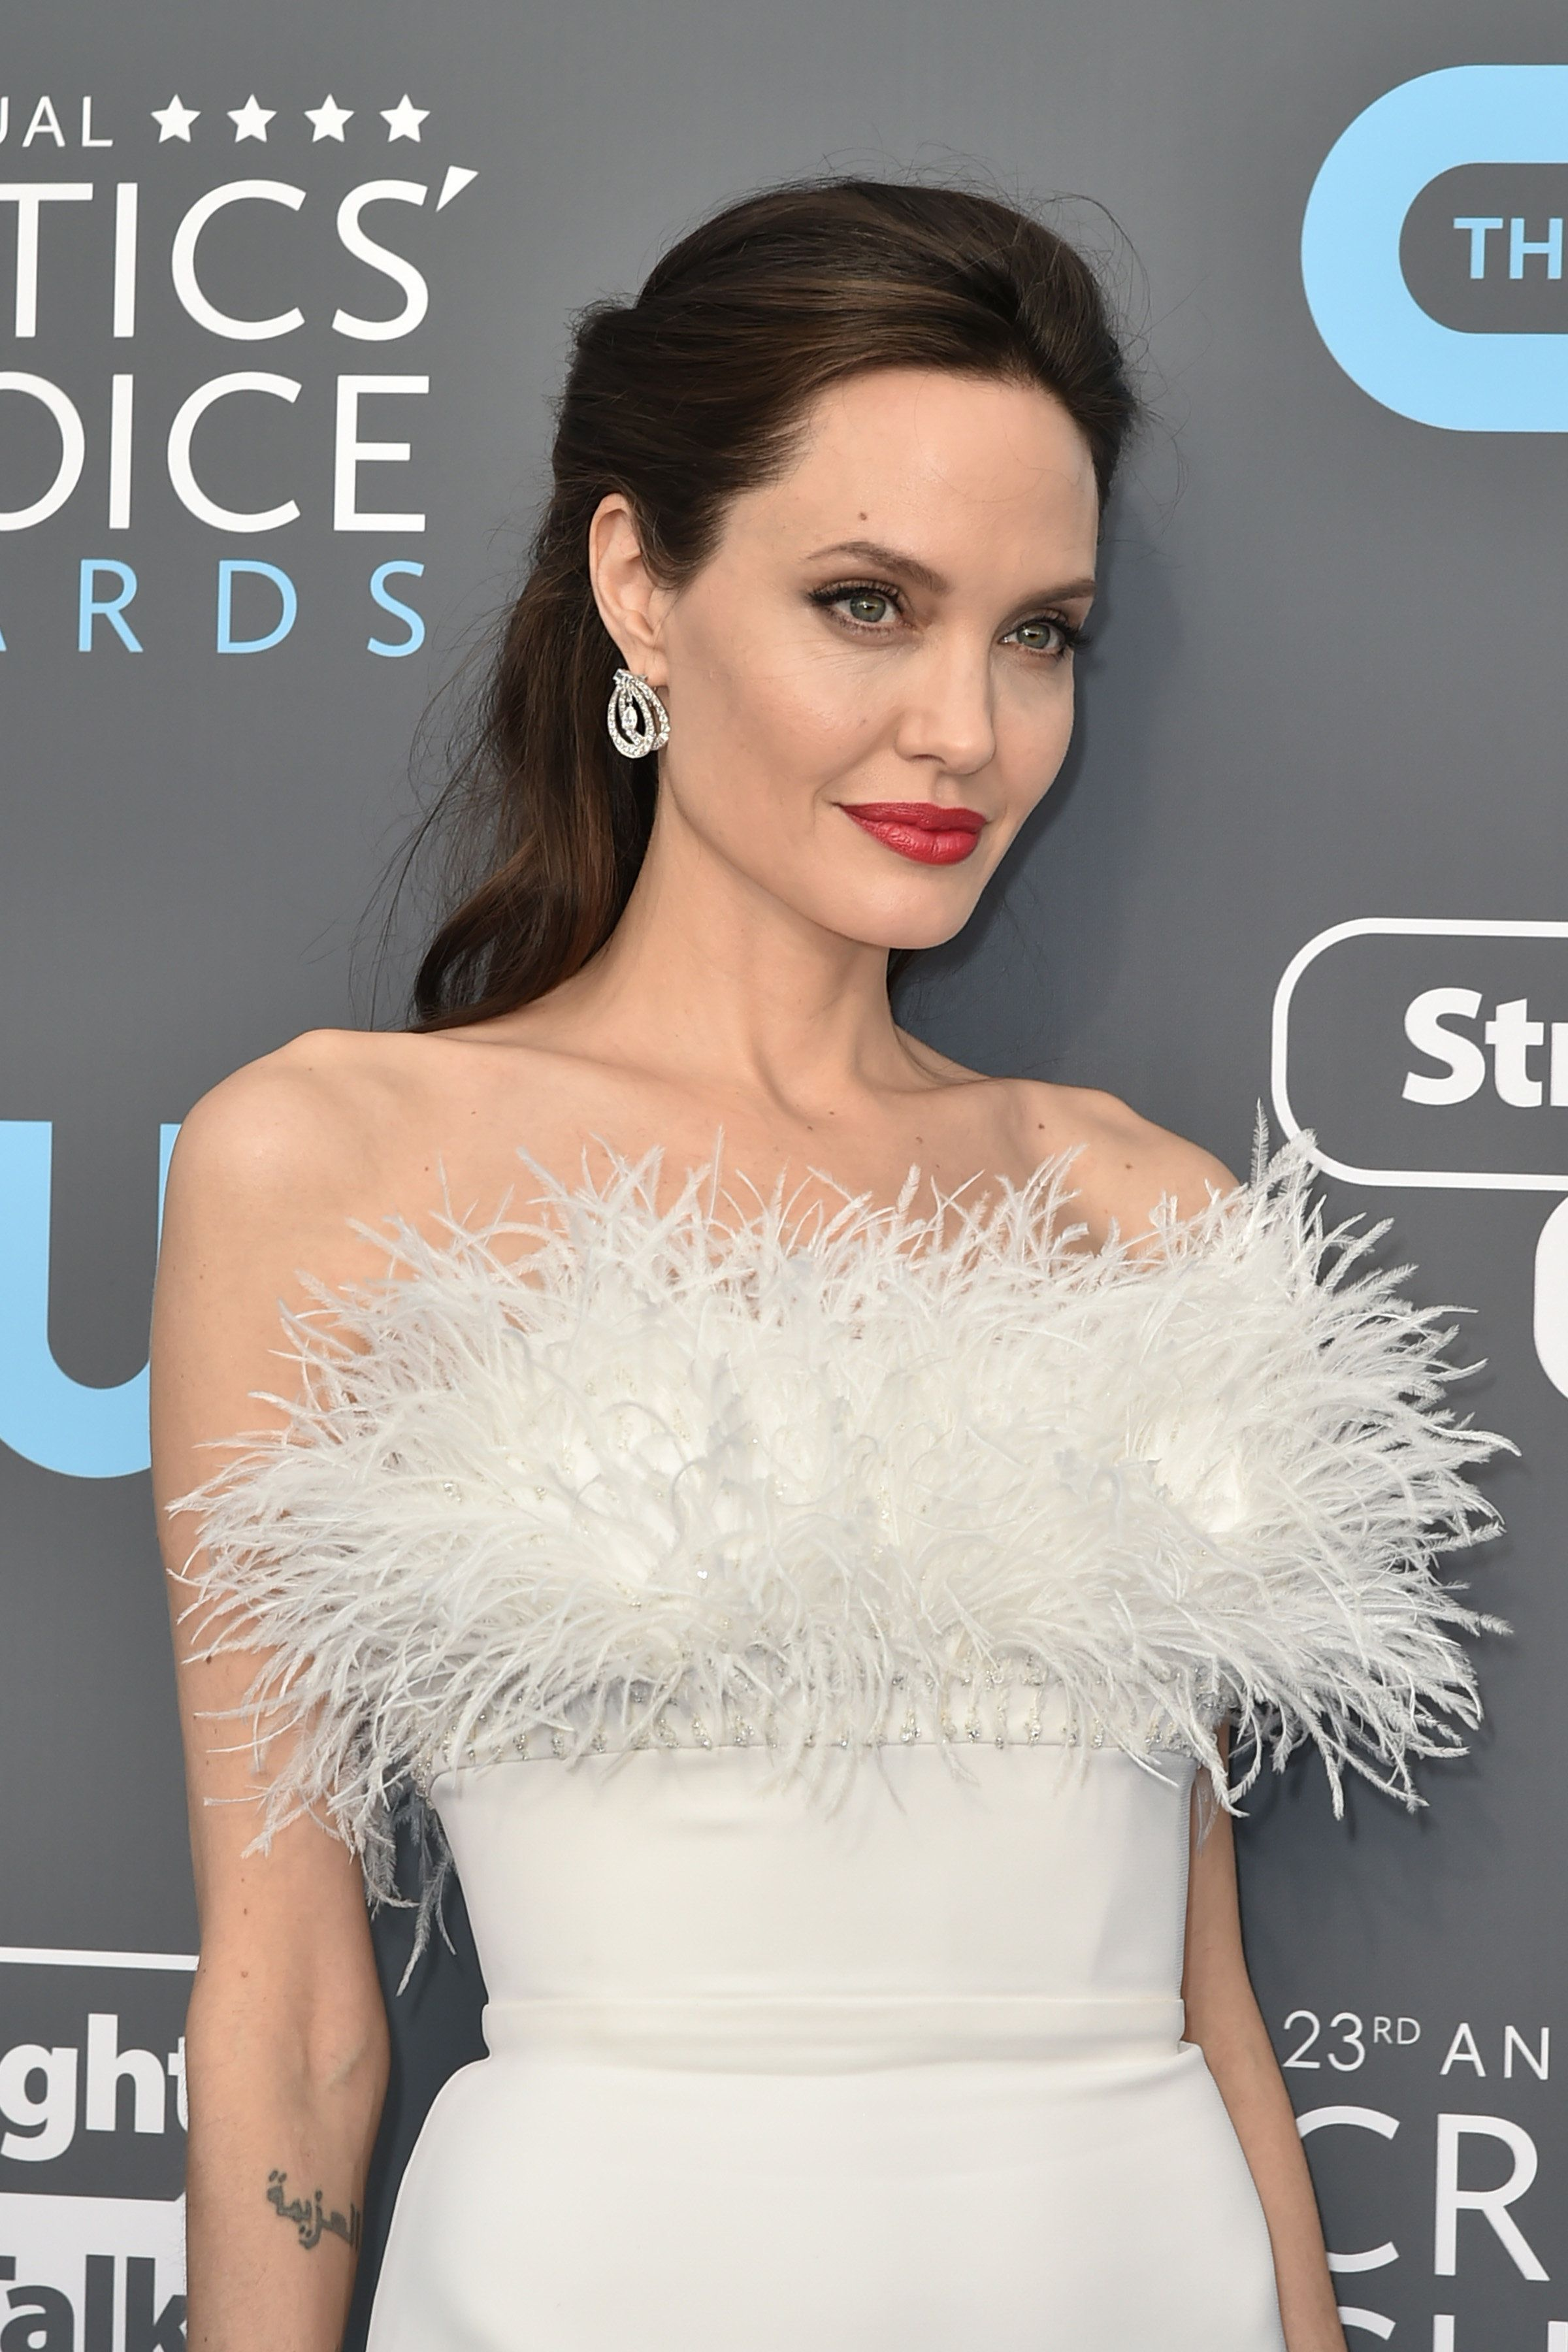 SANTA MONICA, CA - JANUARY 11:  Angelina Jolie attends The 23rd Annual Critics' Choice Awards - Arrivals at The Barker Hanger on January 11, 2018 in Santa Monica, California.  (Photo by David Crotty/Patrick McMullan via Getty Images)